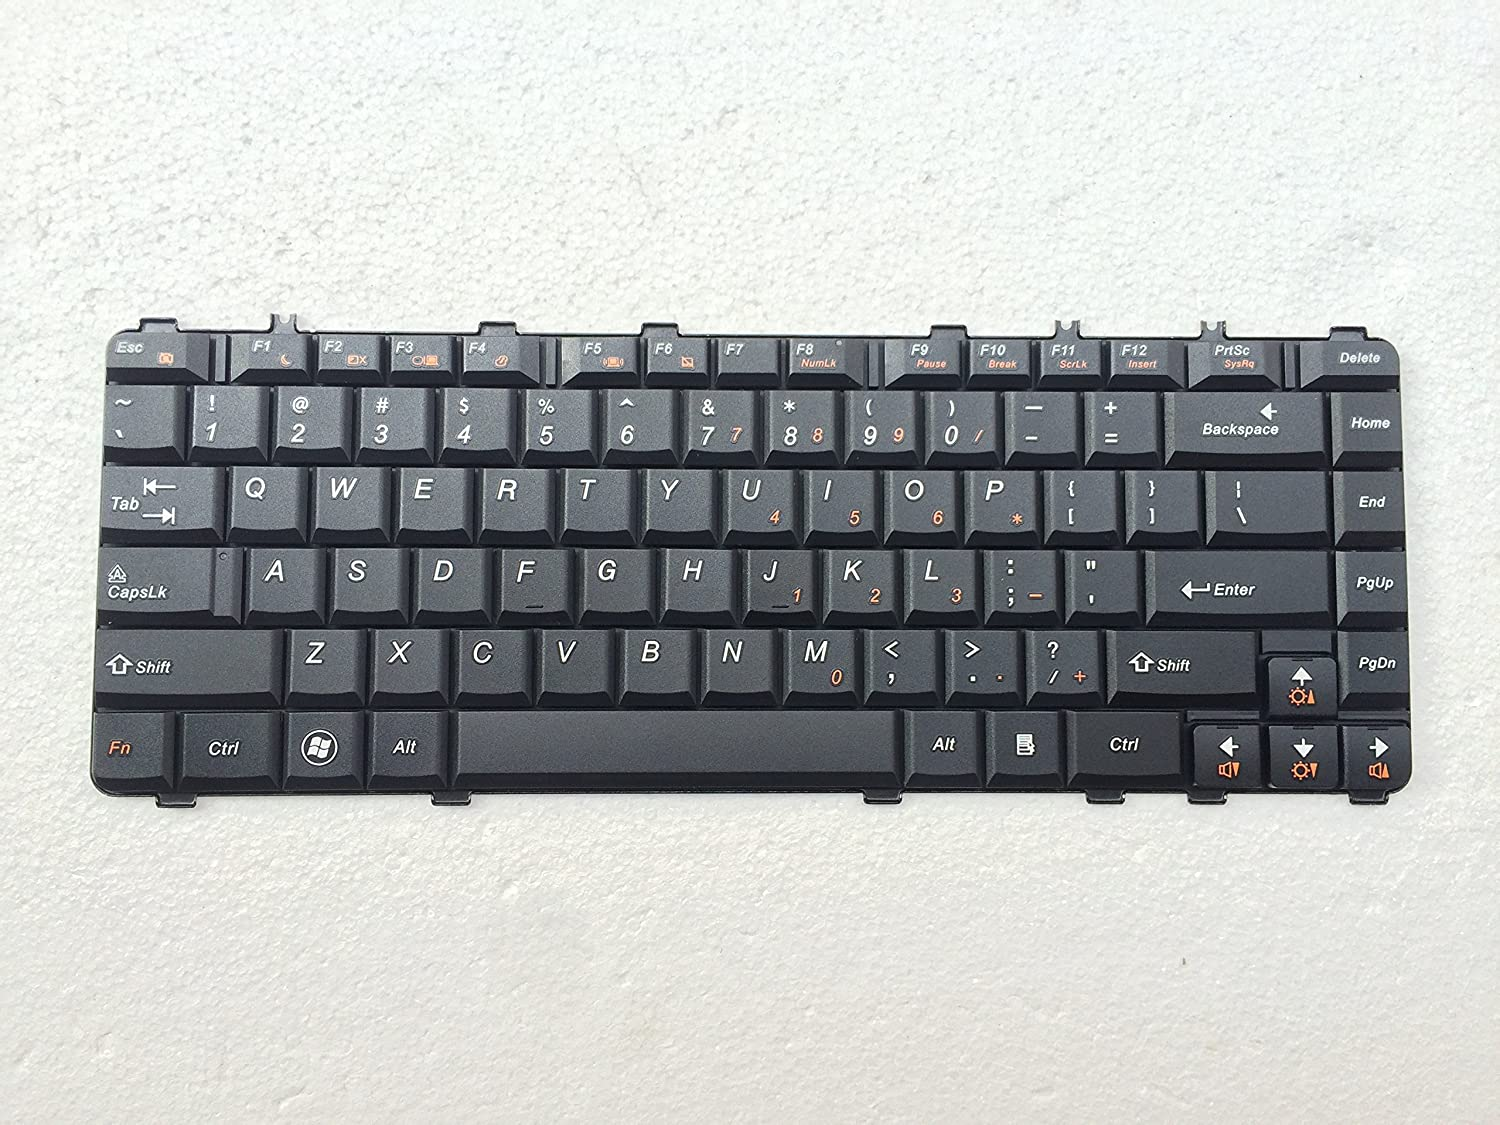 Amazon.com: New laptop replacement keyboard for IBM Lenovo Ideapad Y450AW  Y450 Y450A Y550A Y550P 25-008389 N3S-US N3S84 N3S-US N3SUS Series US Layout  ...